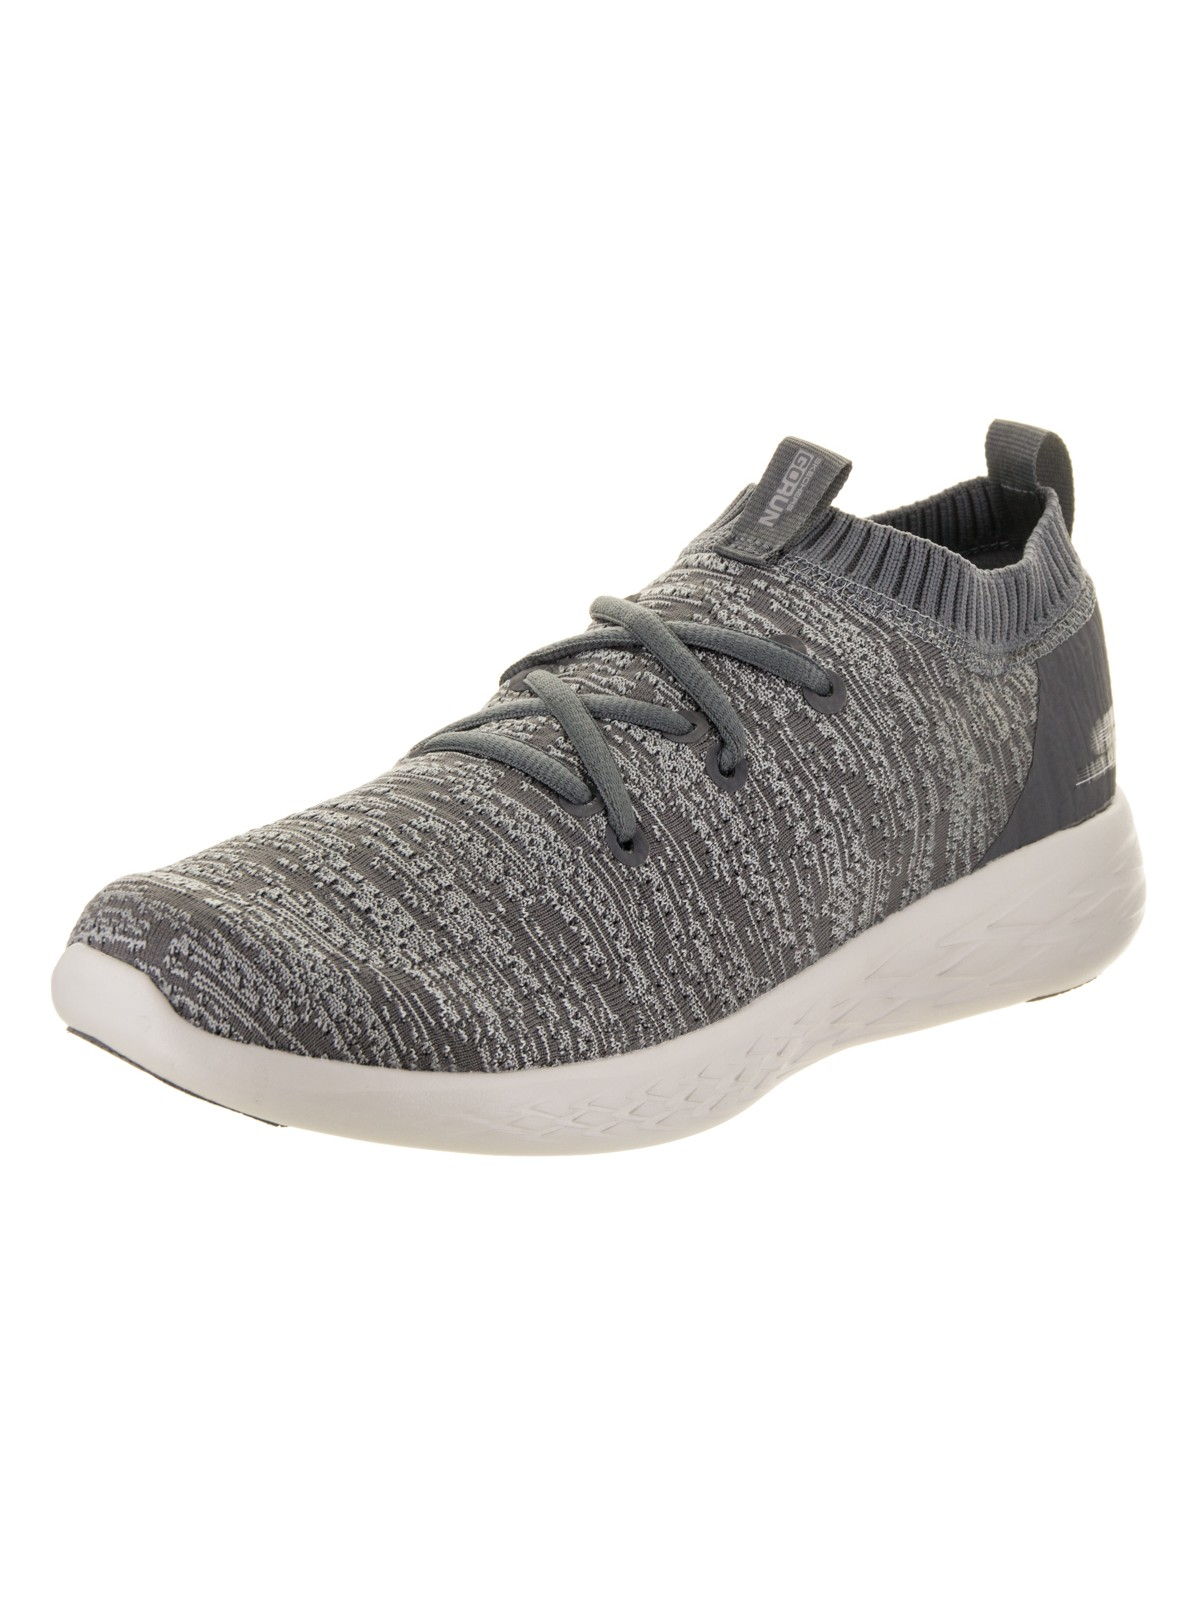 Skechers Men's Go Run 600 - Utilize Running Shoe